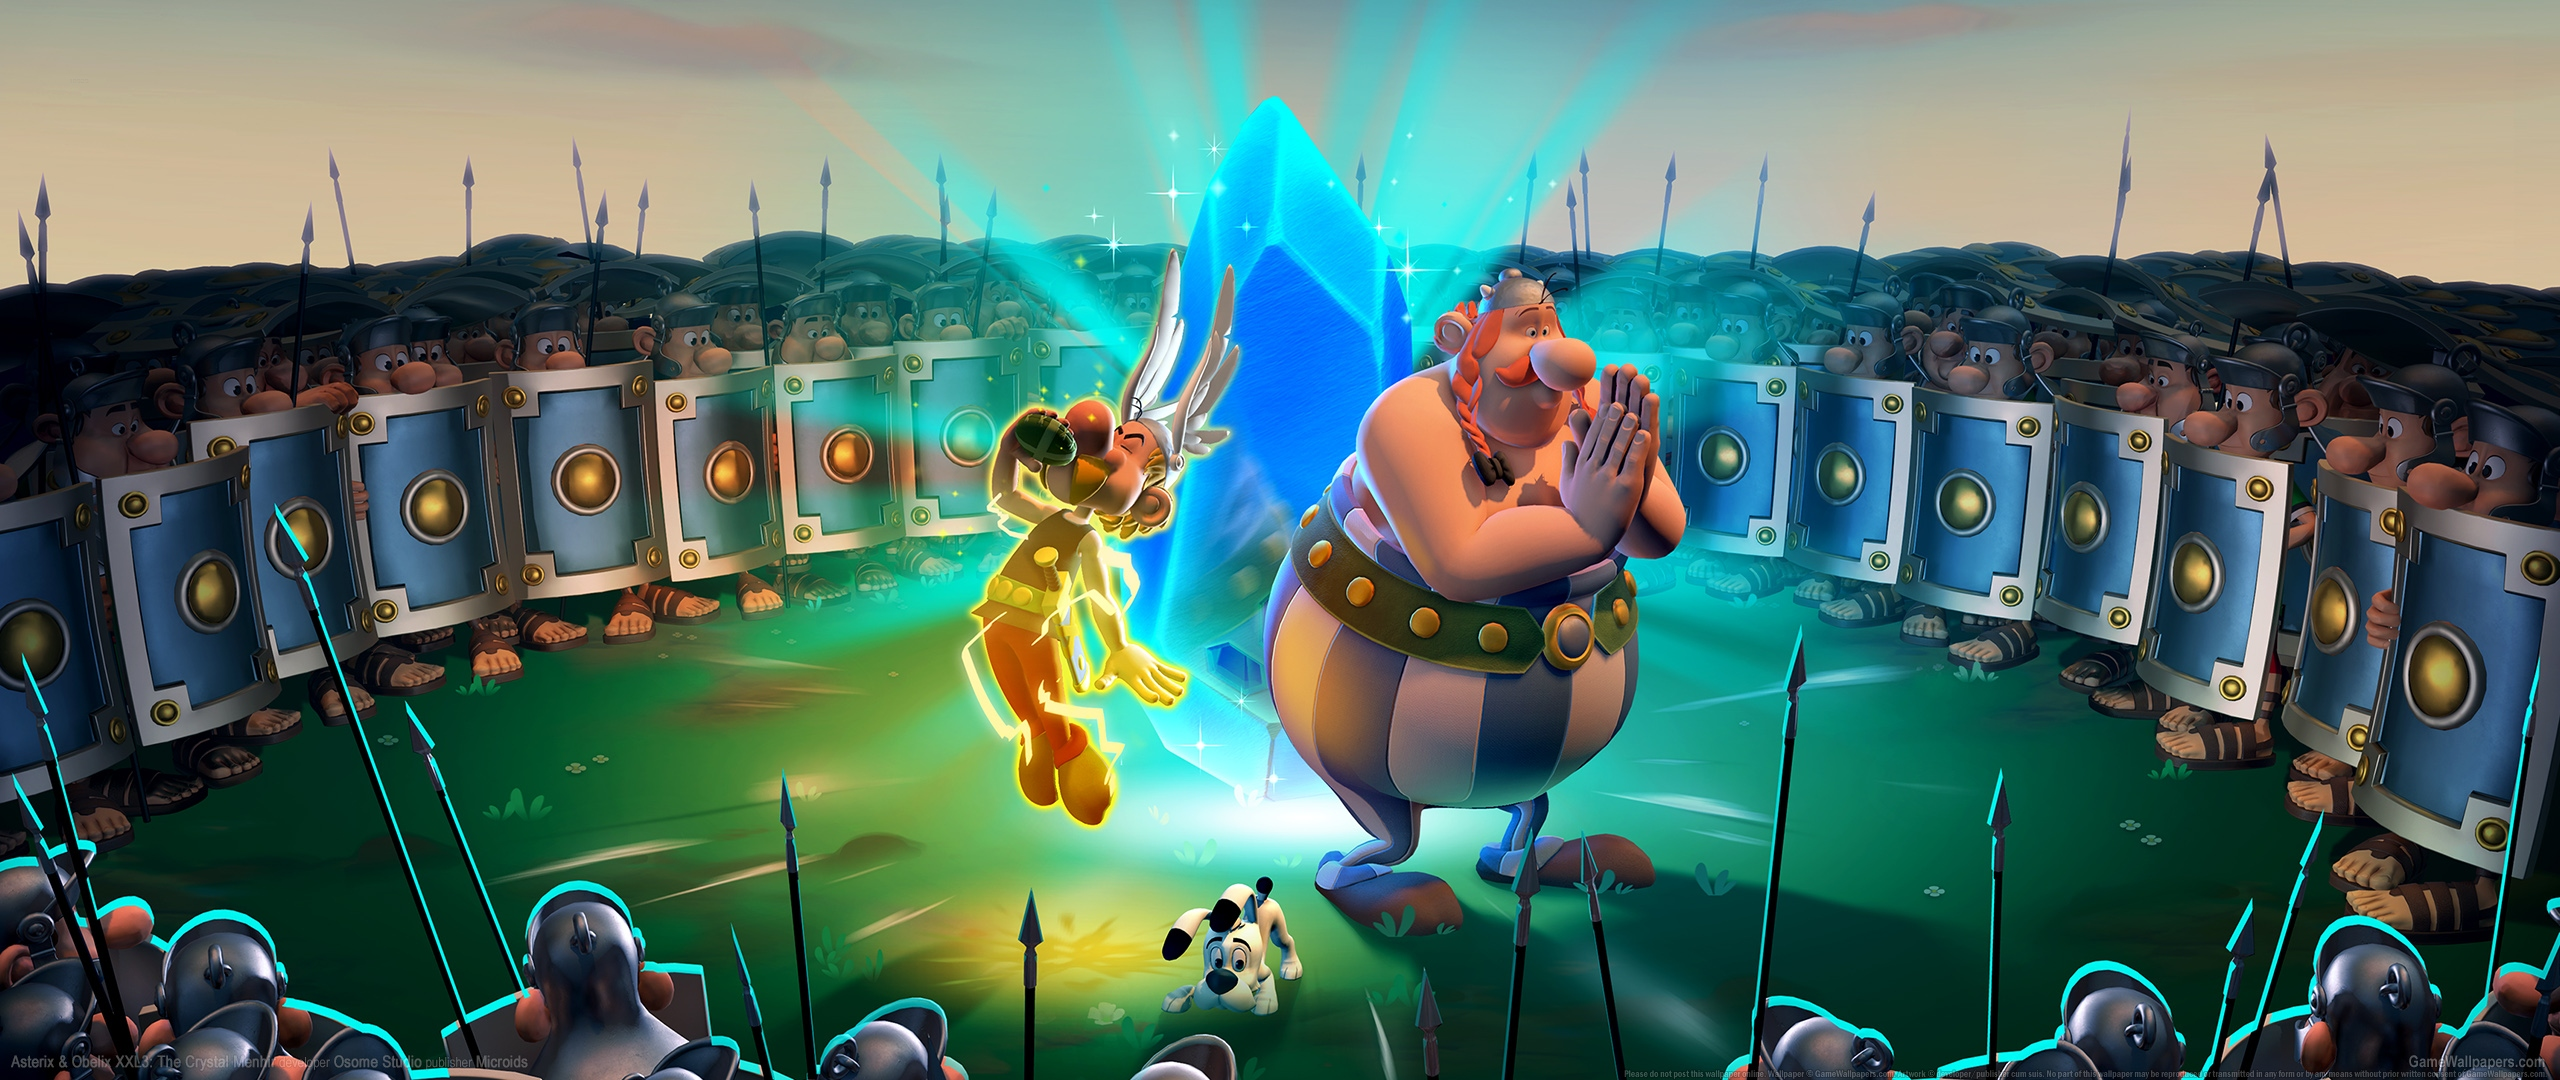 Asterix & Obelix XXL3: The Crystal Menhir 2560x1080 Hintergrundbild 01